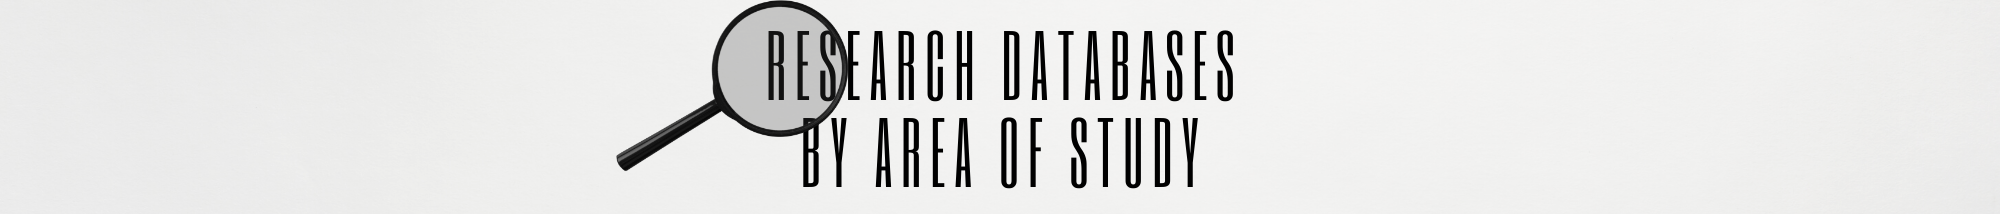 Research Databases by Area of Study